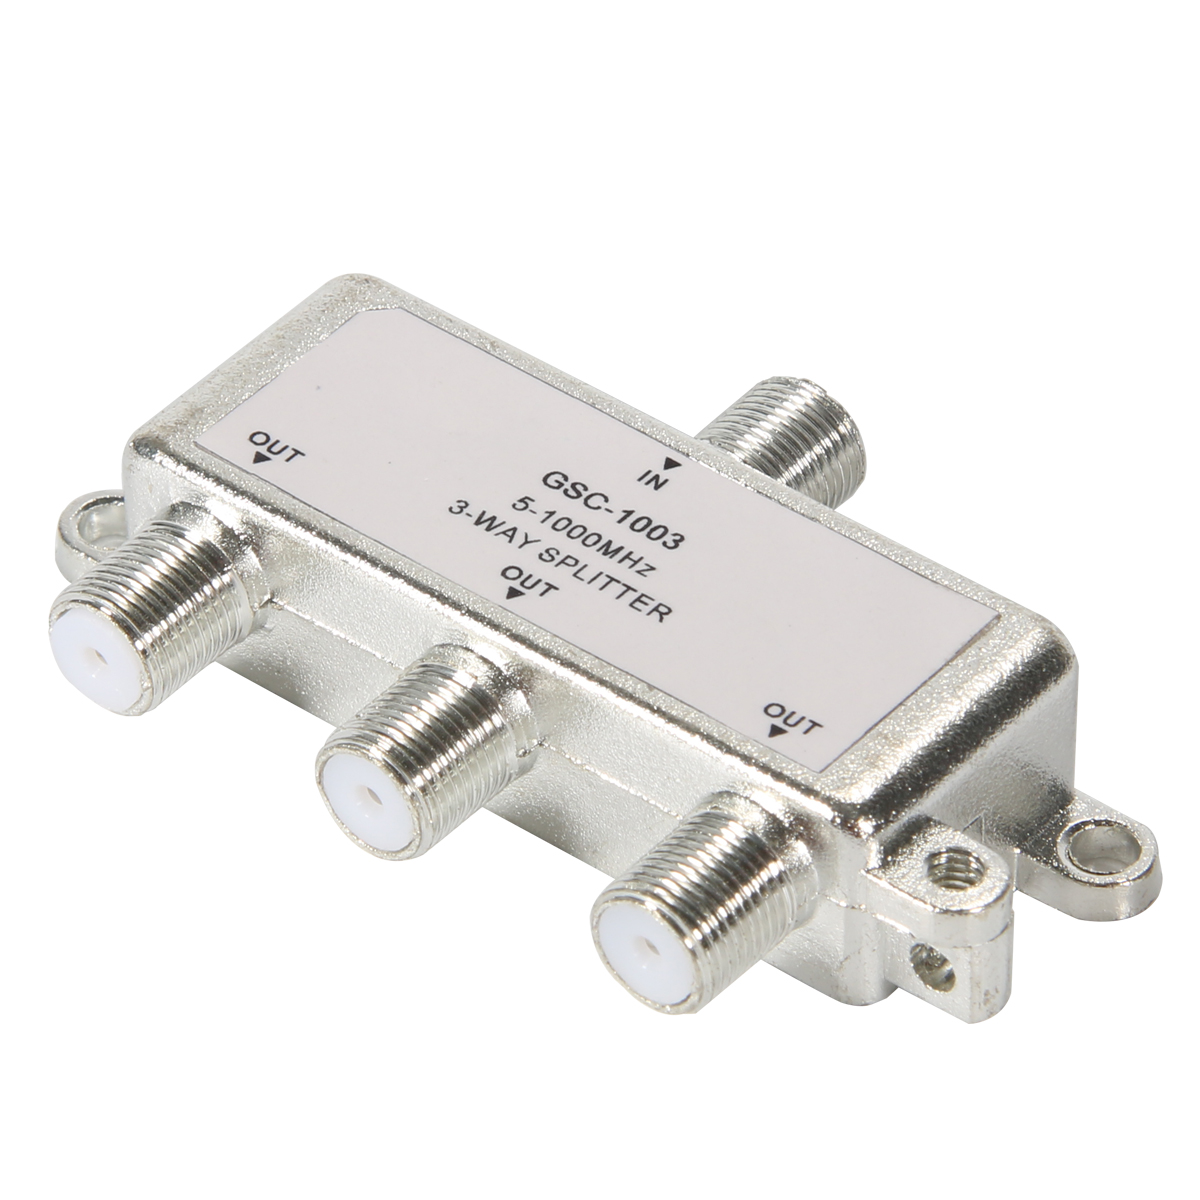 3 Way 5 1000 MHz Signal Aerial Coaxial F Splitter Cable TV Switch ...